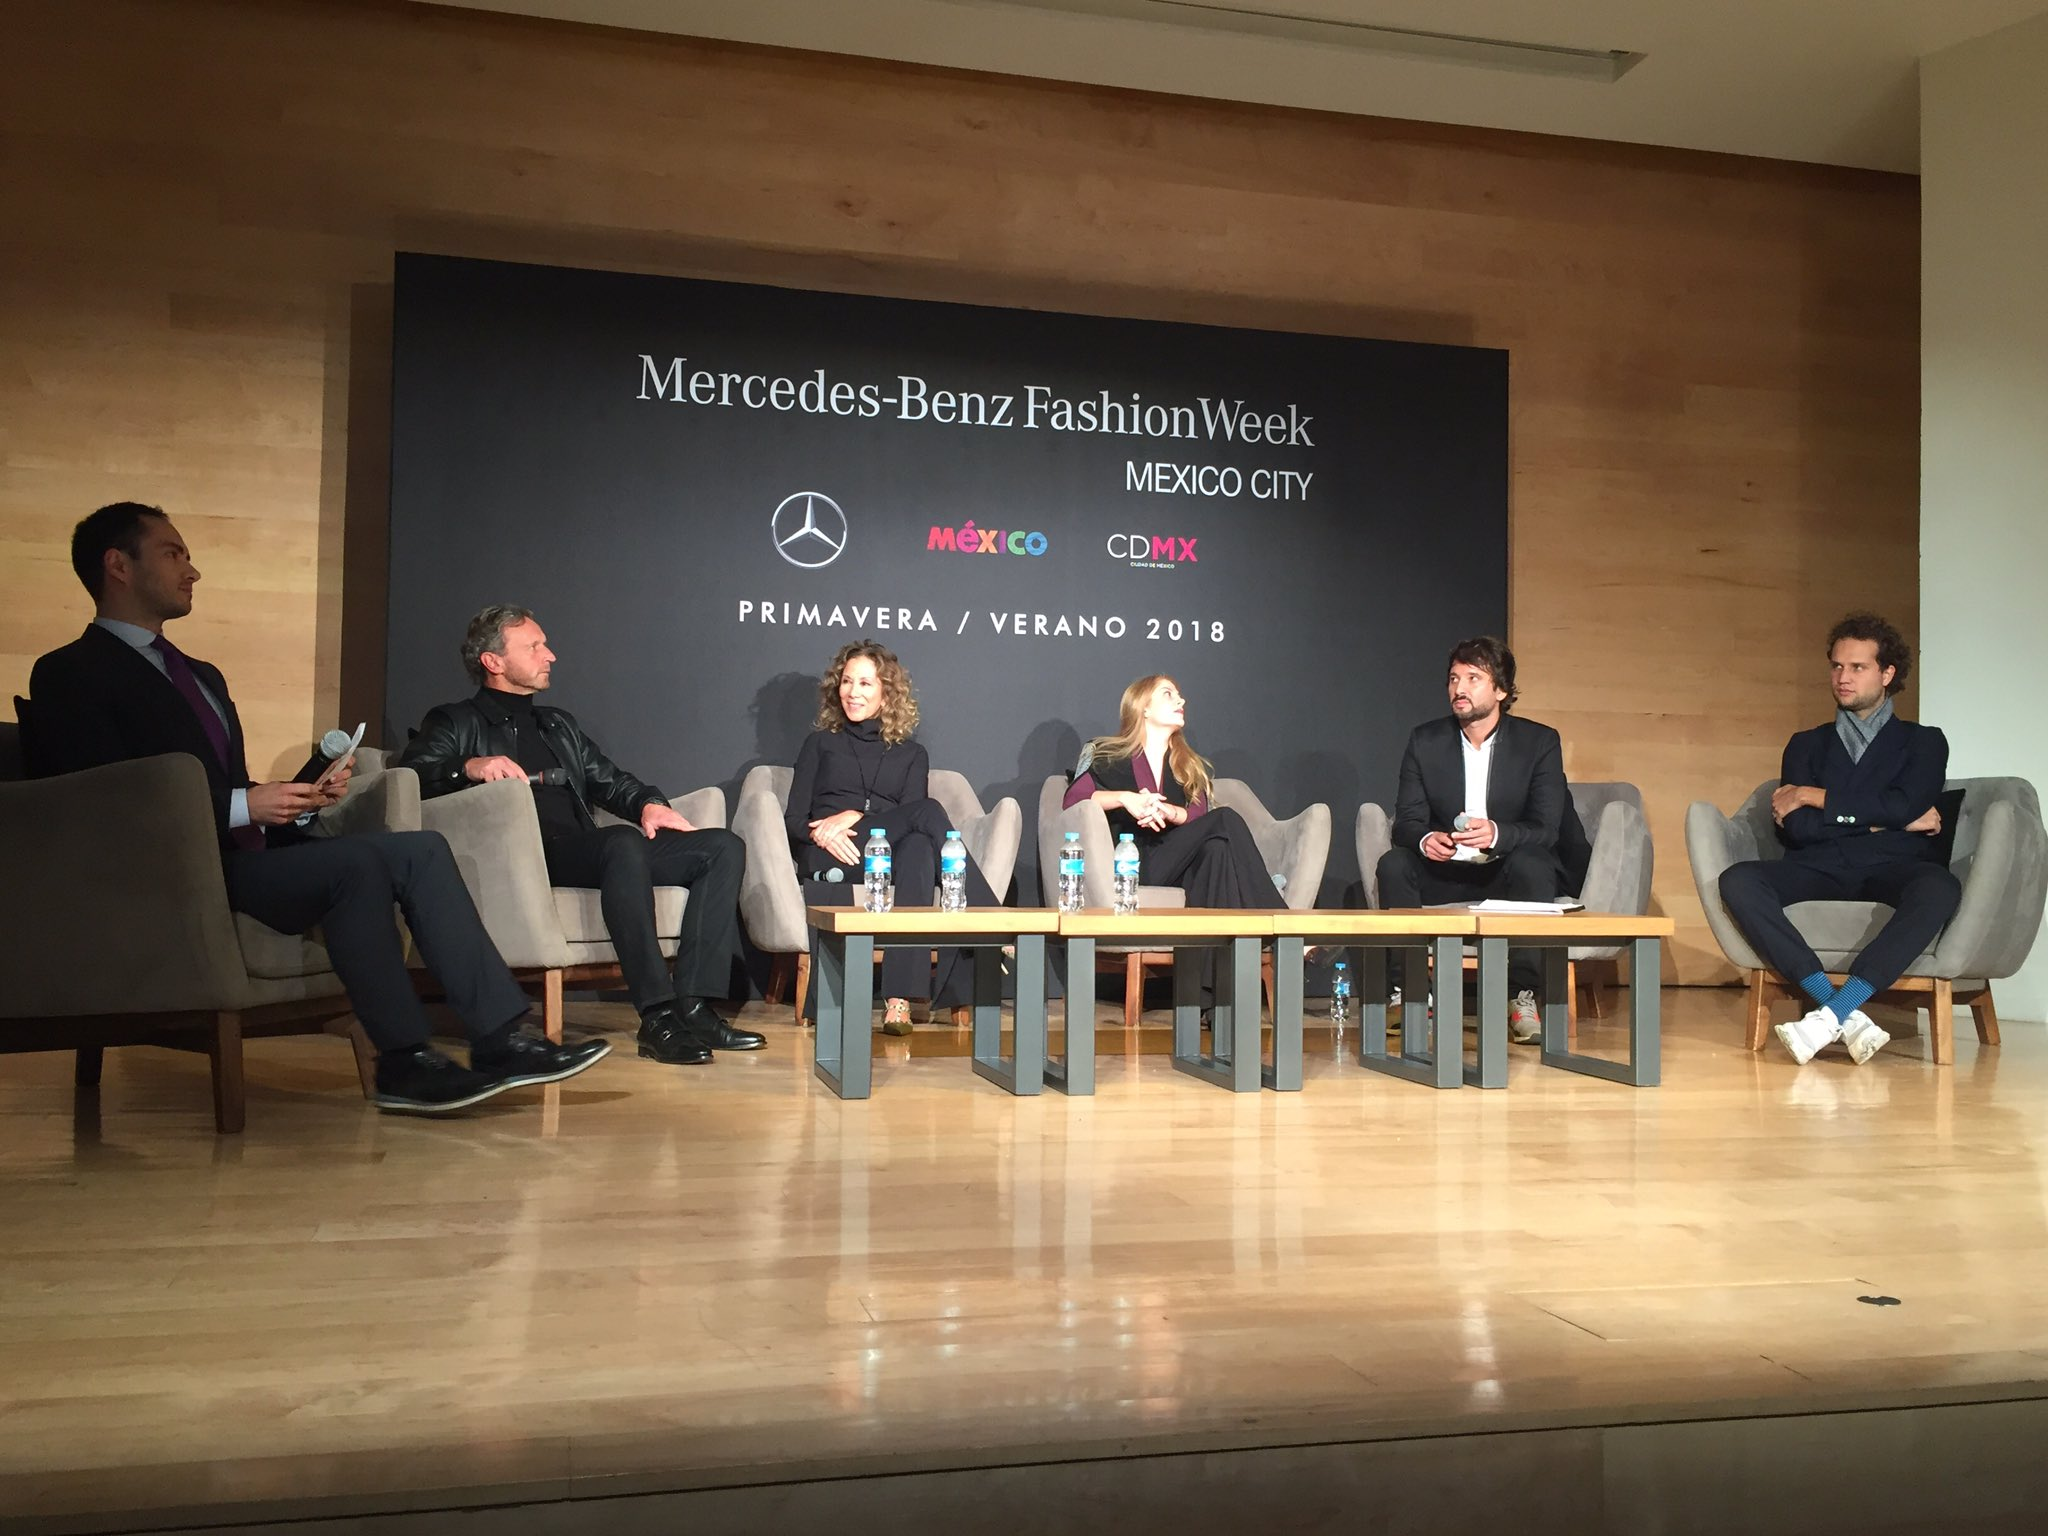 Todo sobre el Mercedes-Benz Fashion Week MX